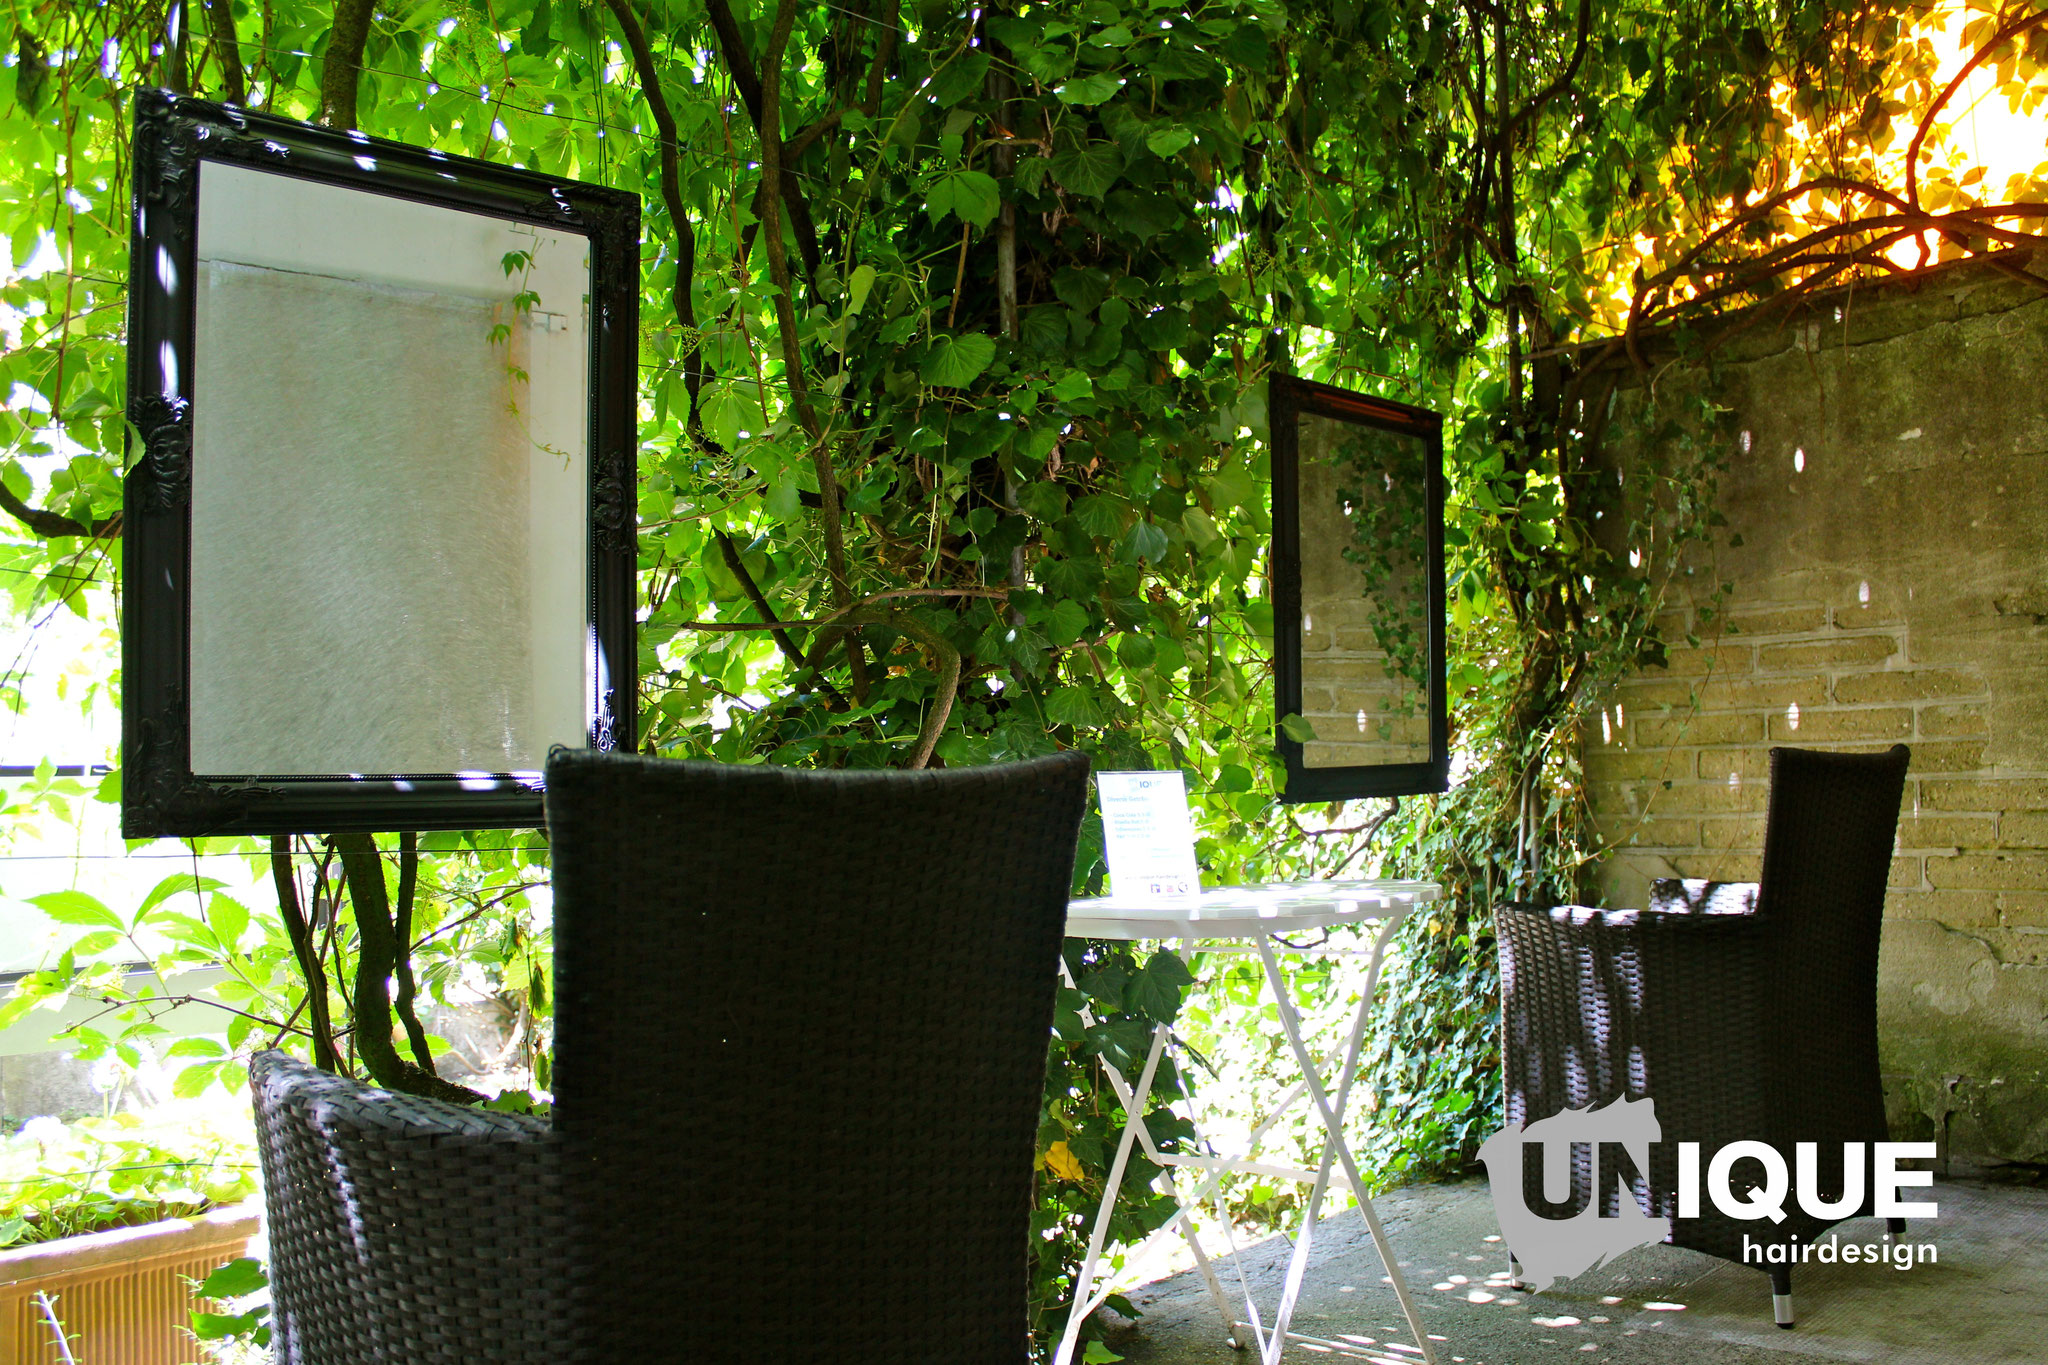 UNIQUE hairdesign - Open Air Coiffeur Solothurn